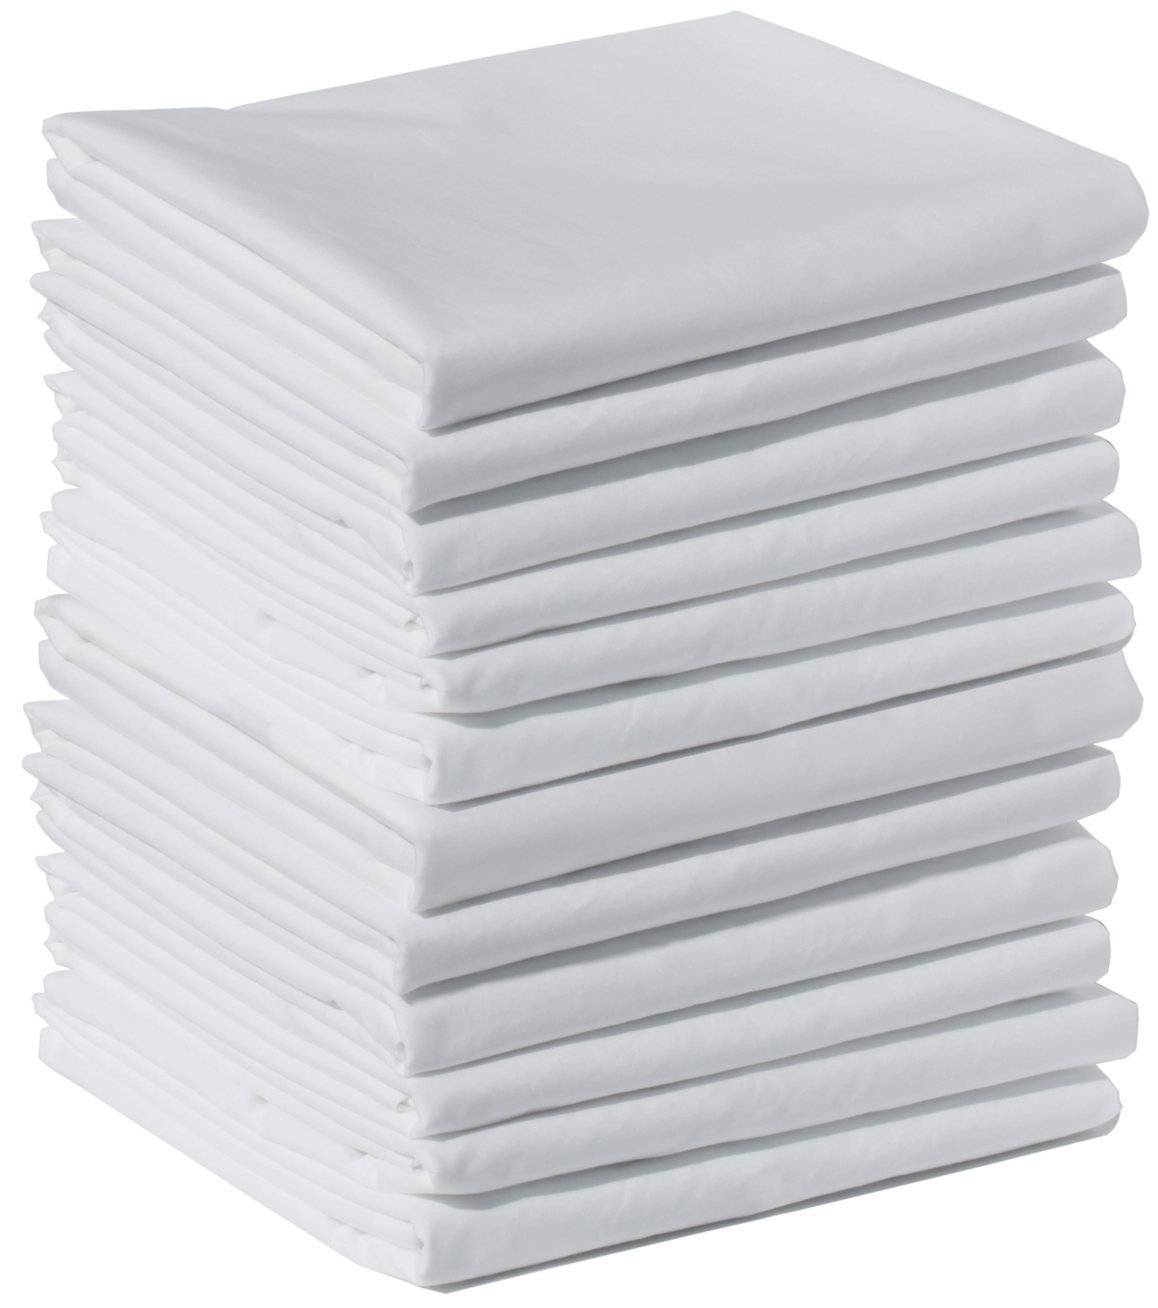 Arihant Bedding Hotel Collection 12 Pillowcases - Standard/Queen(20x30) Solid White - Pure Cotton with Envelope Closure End - Set of 1 Dozen Pillowcases